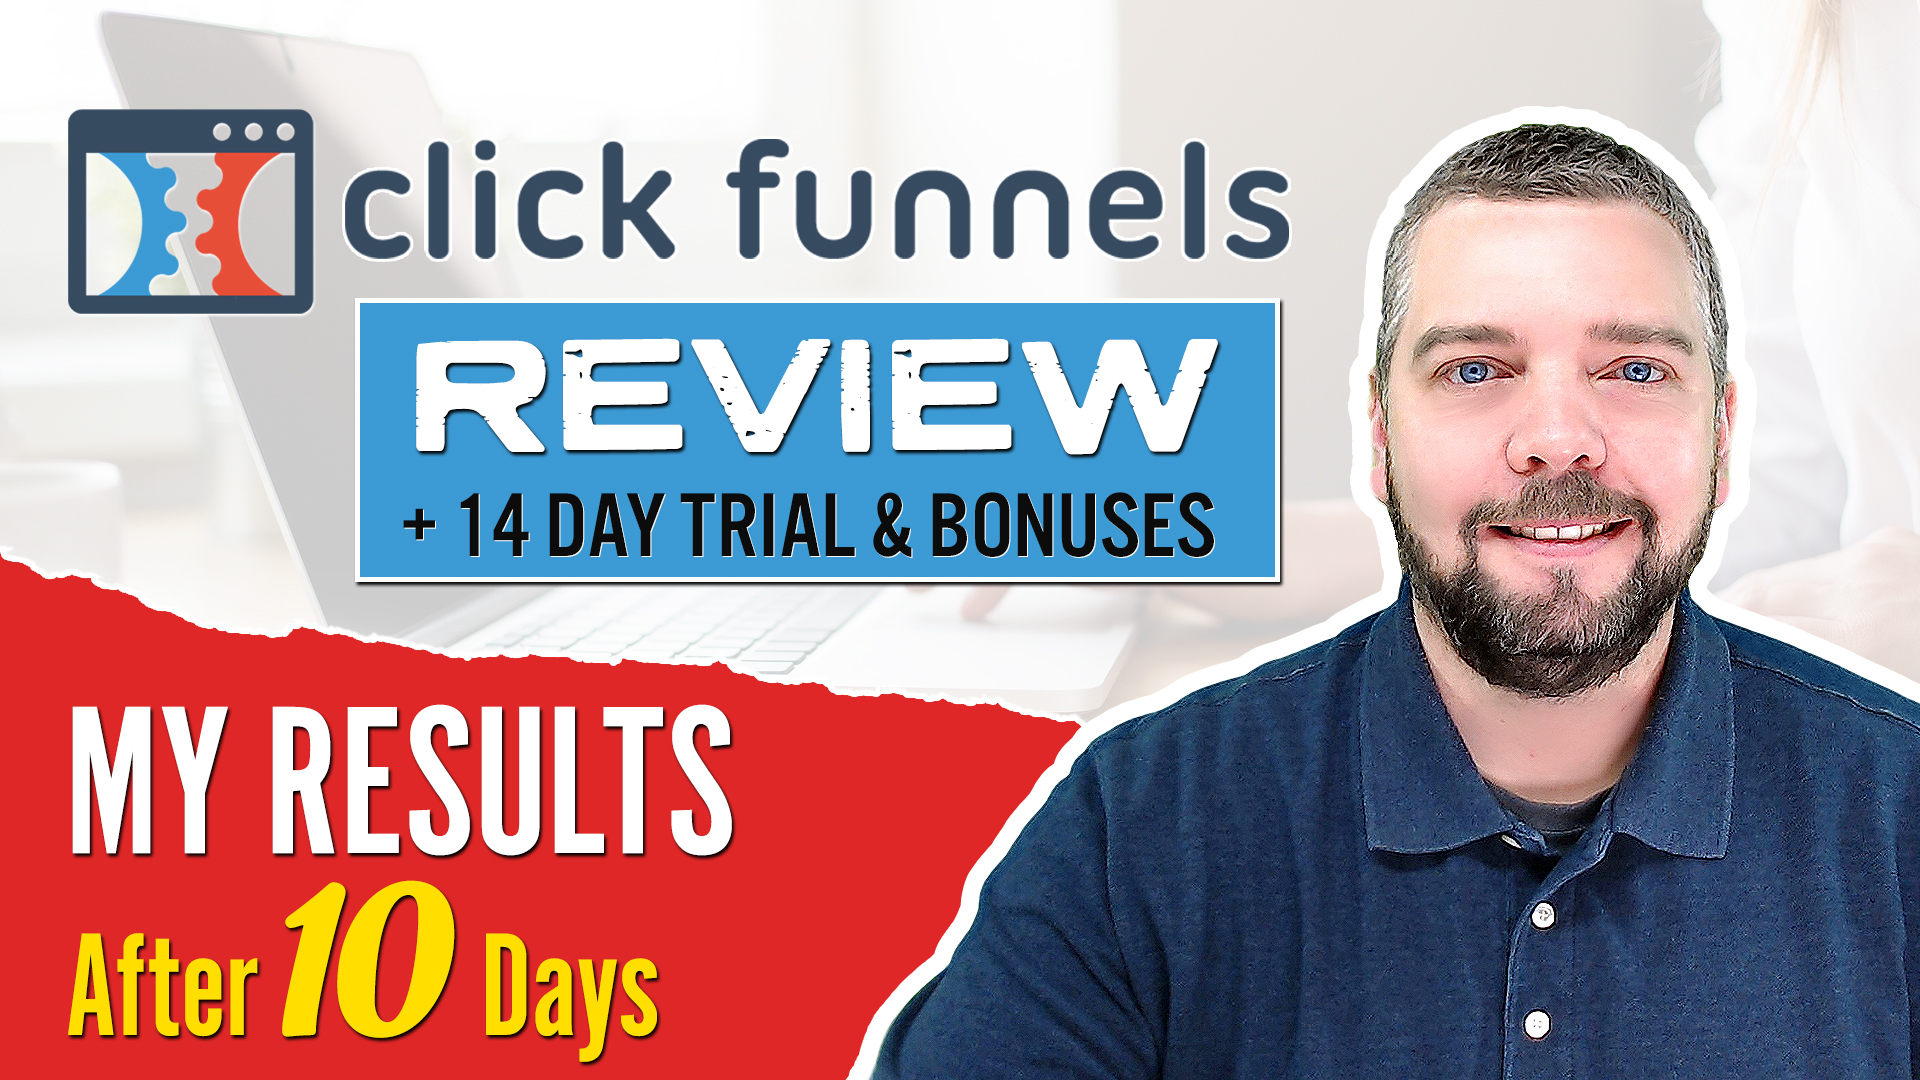 Clickfunnels Review - What is Clickfunnels 6